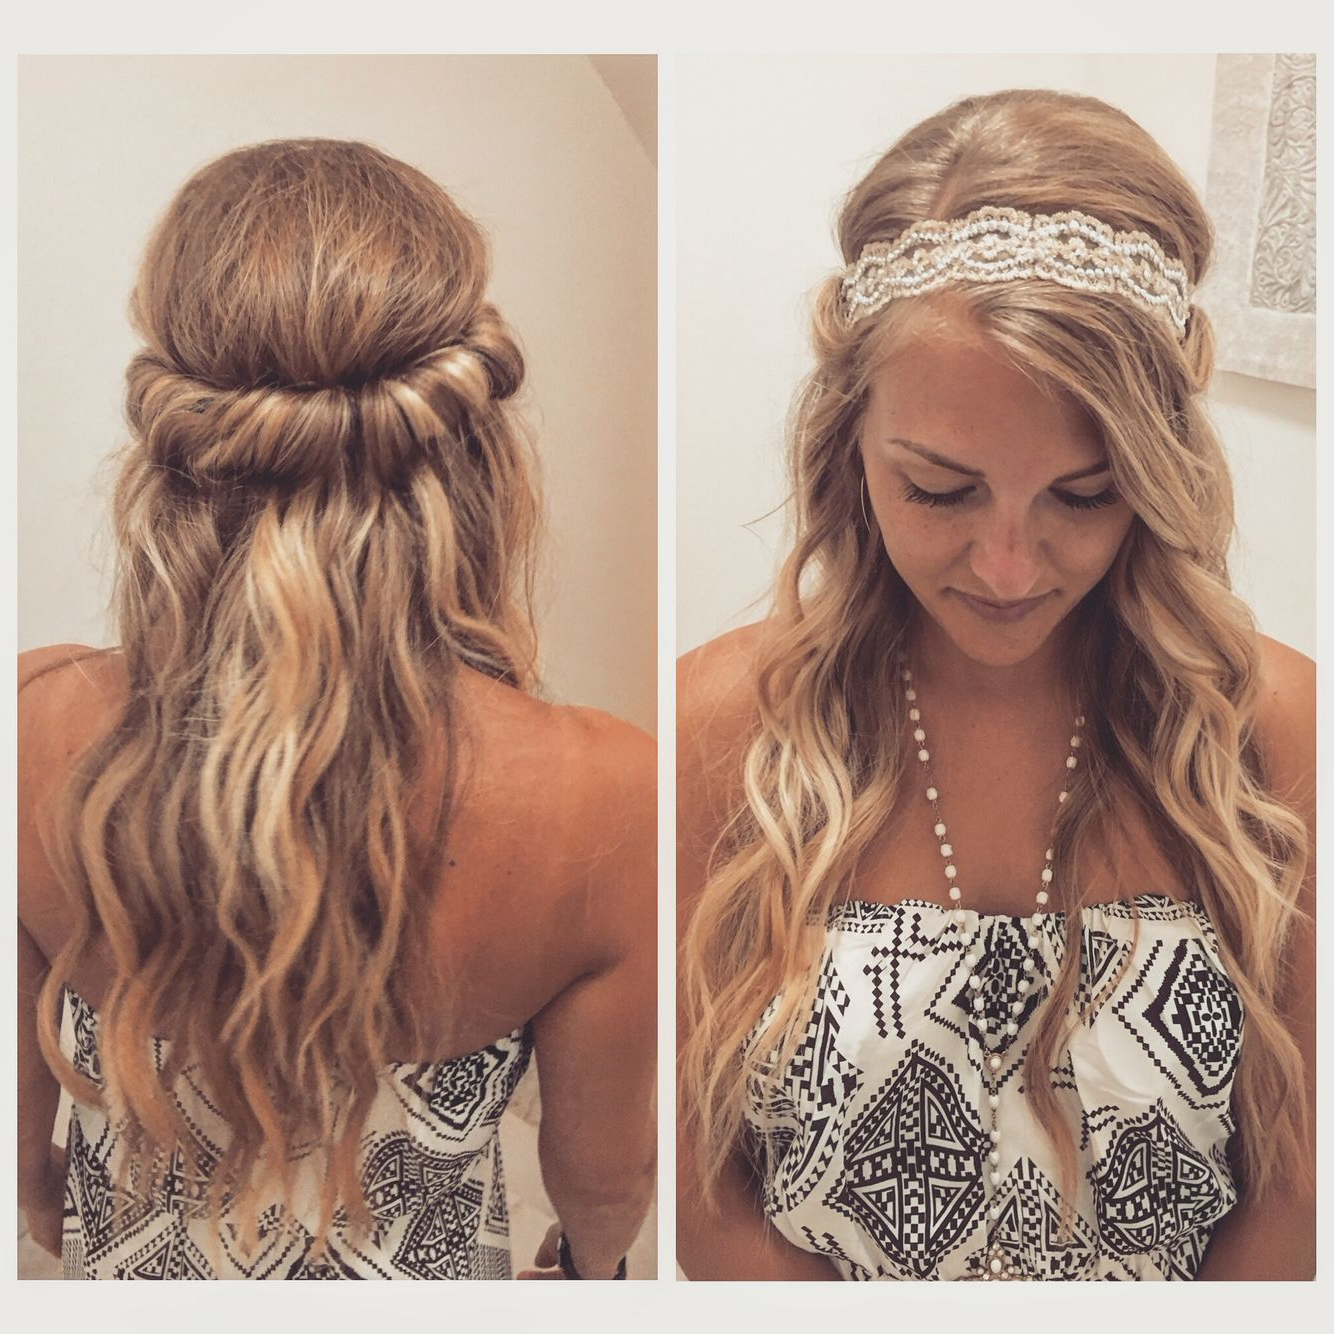 Easy Vacation Hairdo With Beach Waves And A Headband For Well Known Headband Braid Hairstyles With Long Waves (Gallery 6 of 20)